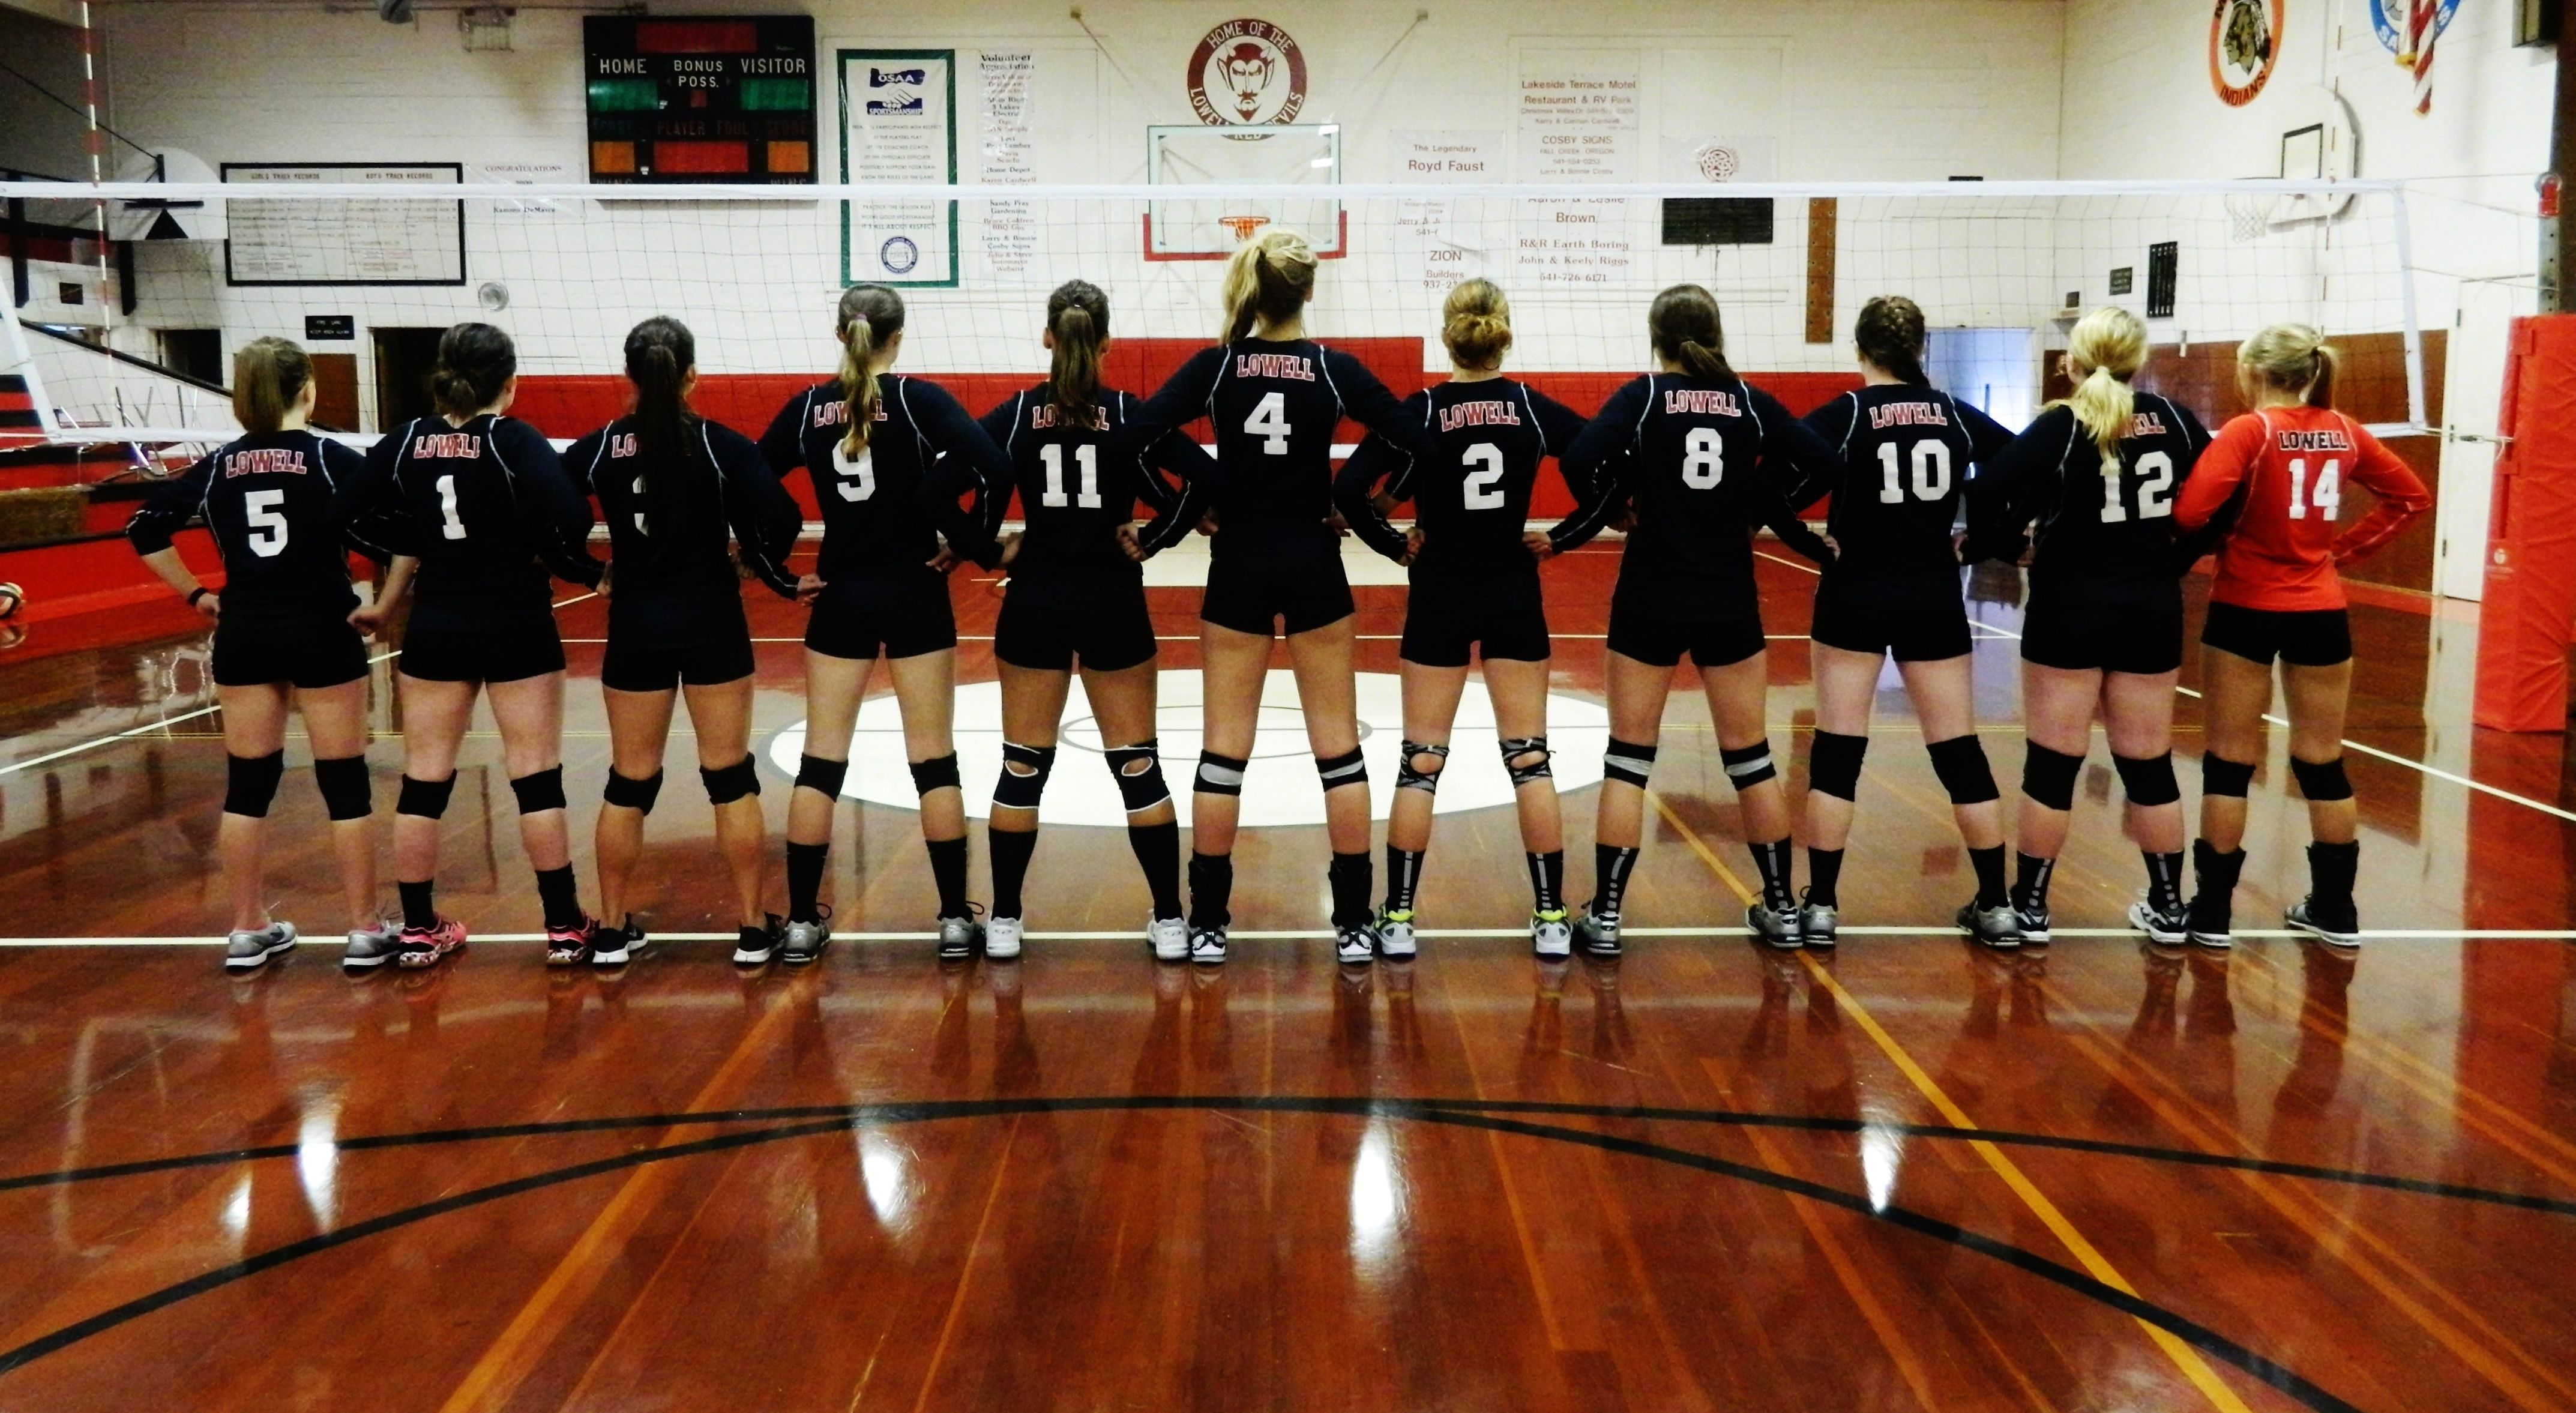 Pin By Jennifer Audrey Keith On Volleyball Photography Volleyball Team Pictures Team Pictures Volleyball Pictures